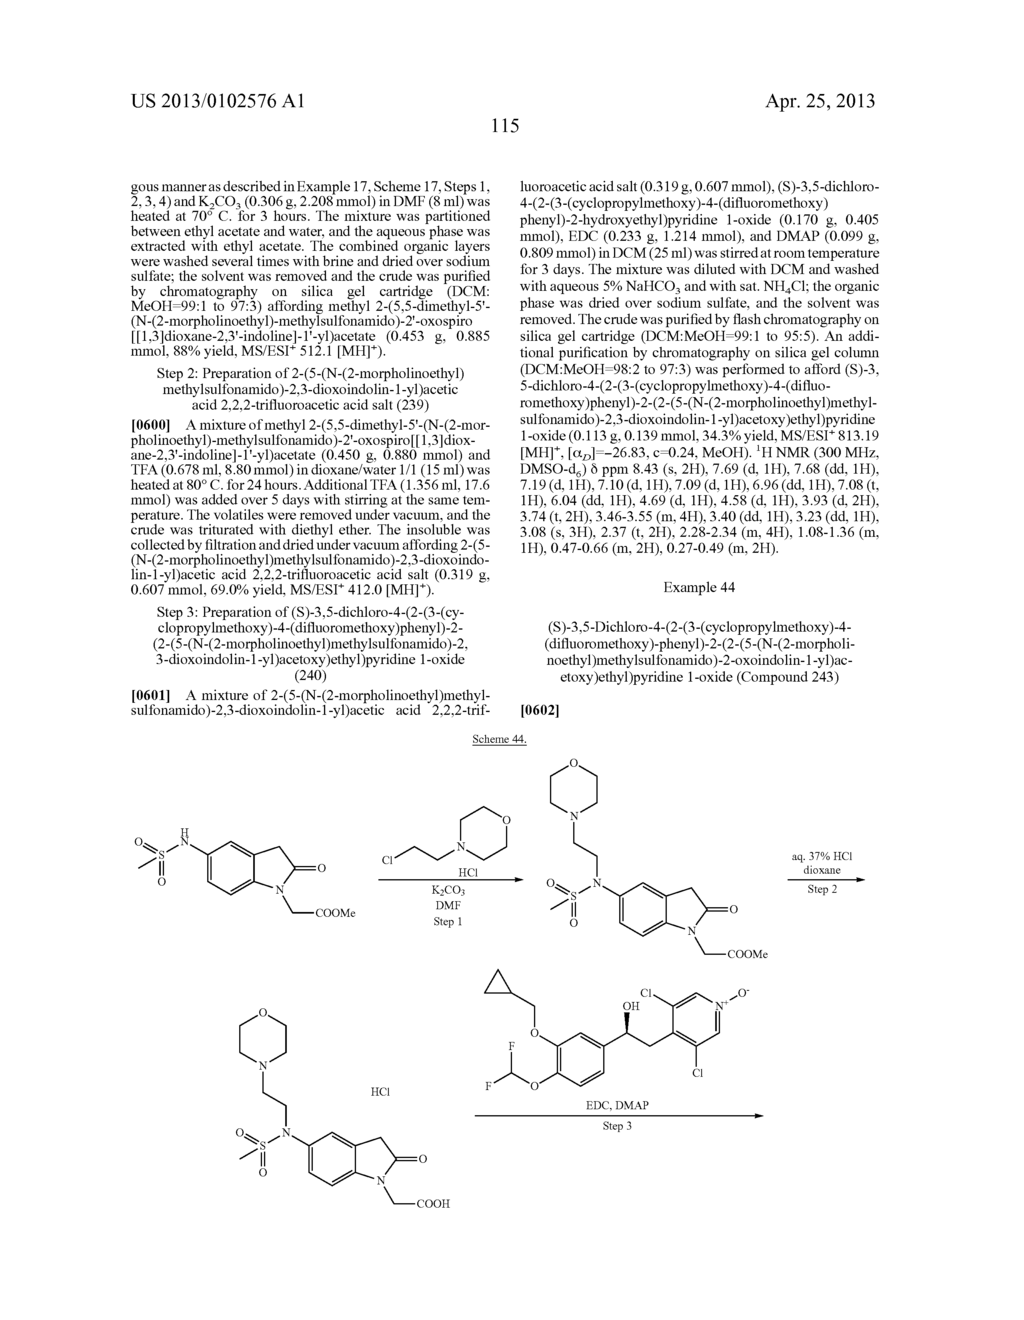 DERIVATIVES OF 1-PHENYL-2-PYRIDINYL ALKYL ALCOHOLS AS PHOSPHODIESTERASE     INHIBITORS - diagram, schematic, and image 115